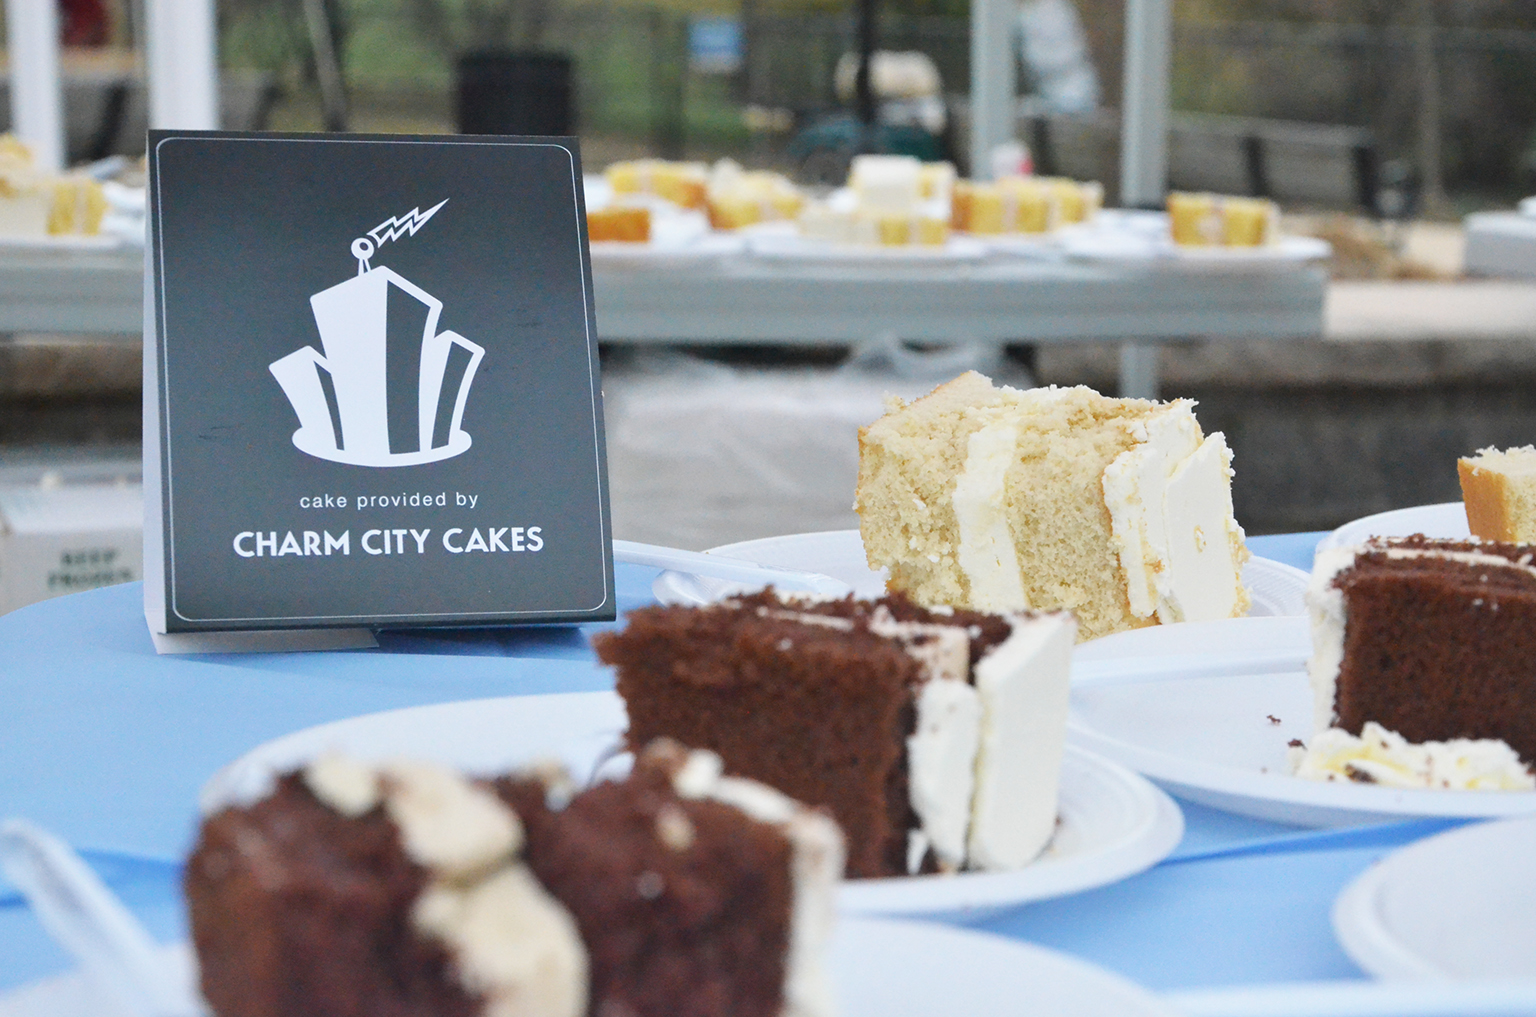 pieces of Charm City cake